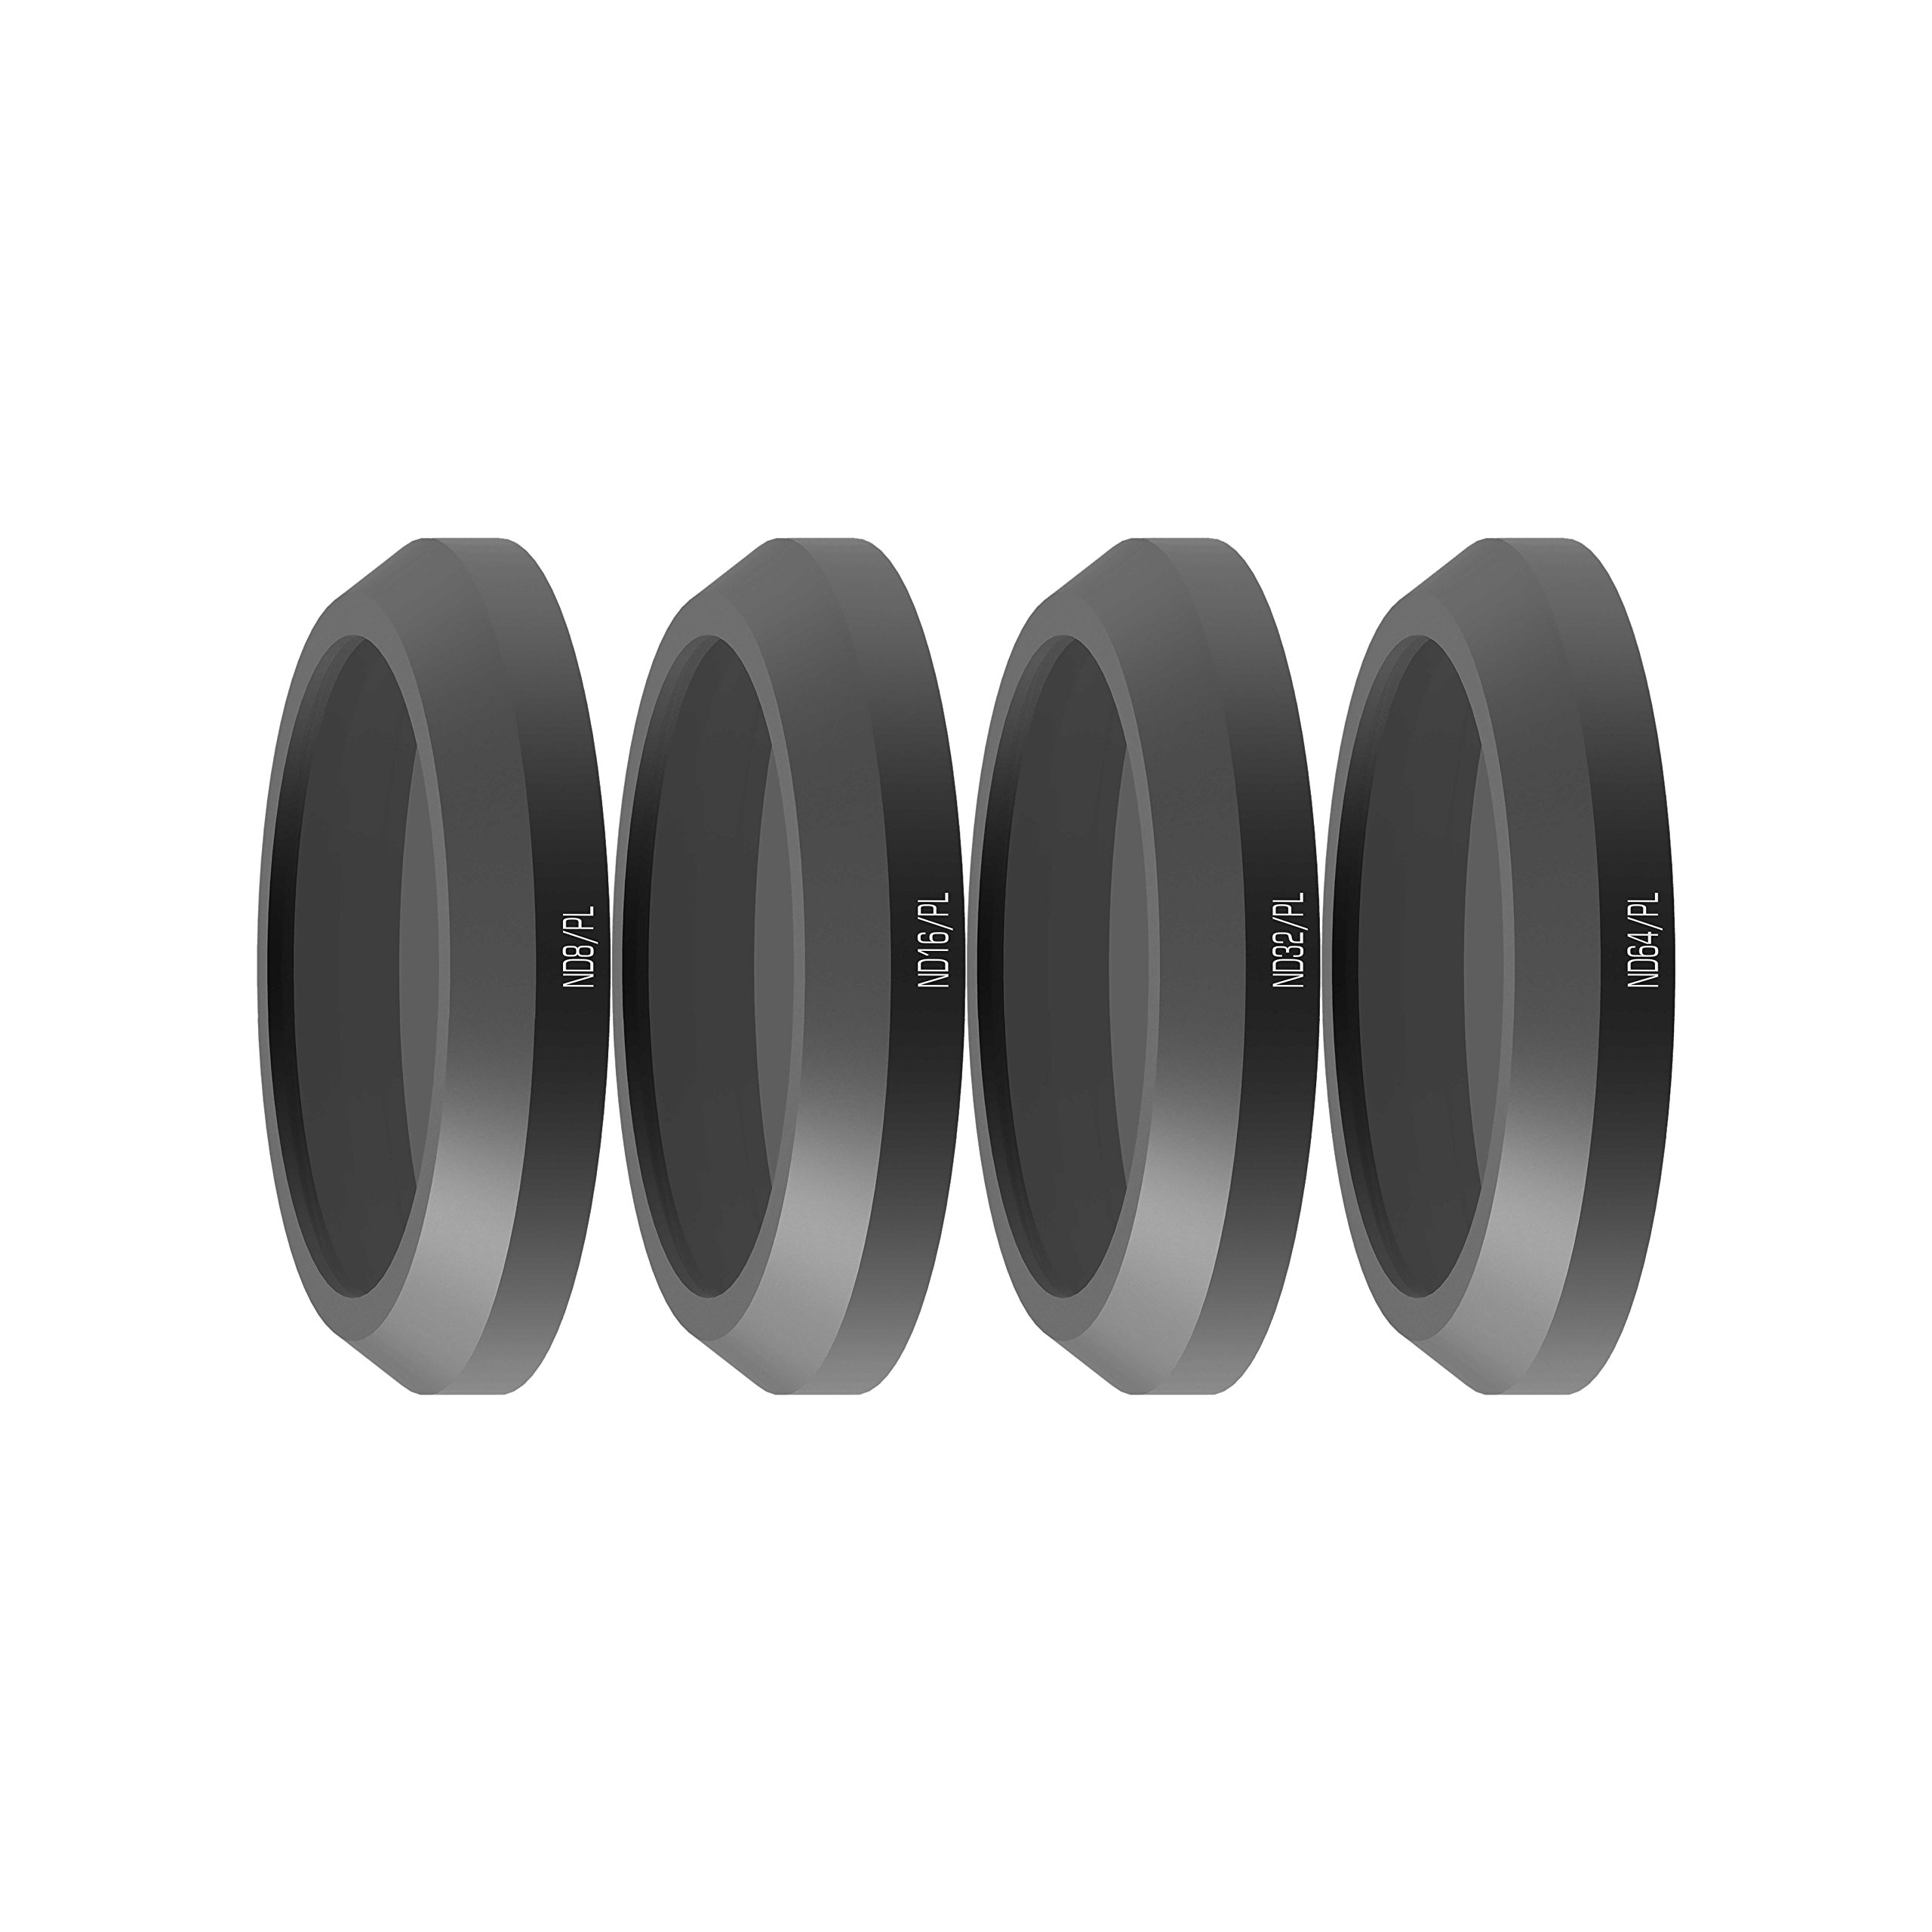 Freewell Bright Day-Camera Lens Filters Set 4Pack ND8/PL, ND16/PL, ND32/PL, ND64/PL Compatible with Parrot Anafi Drone by Freewell